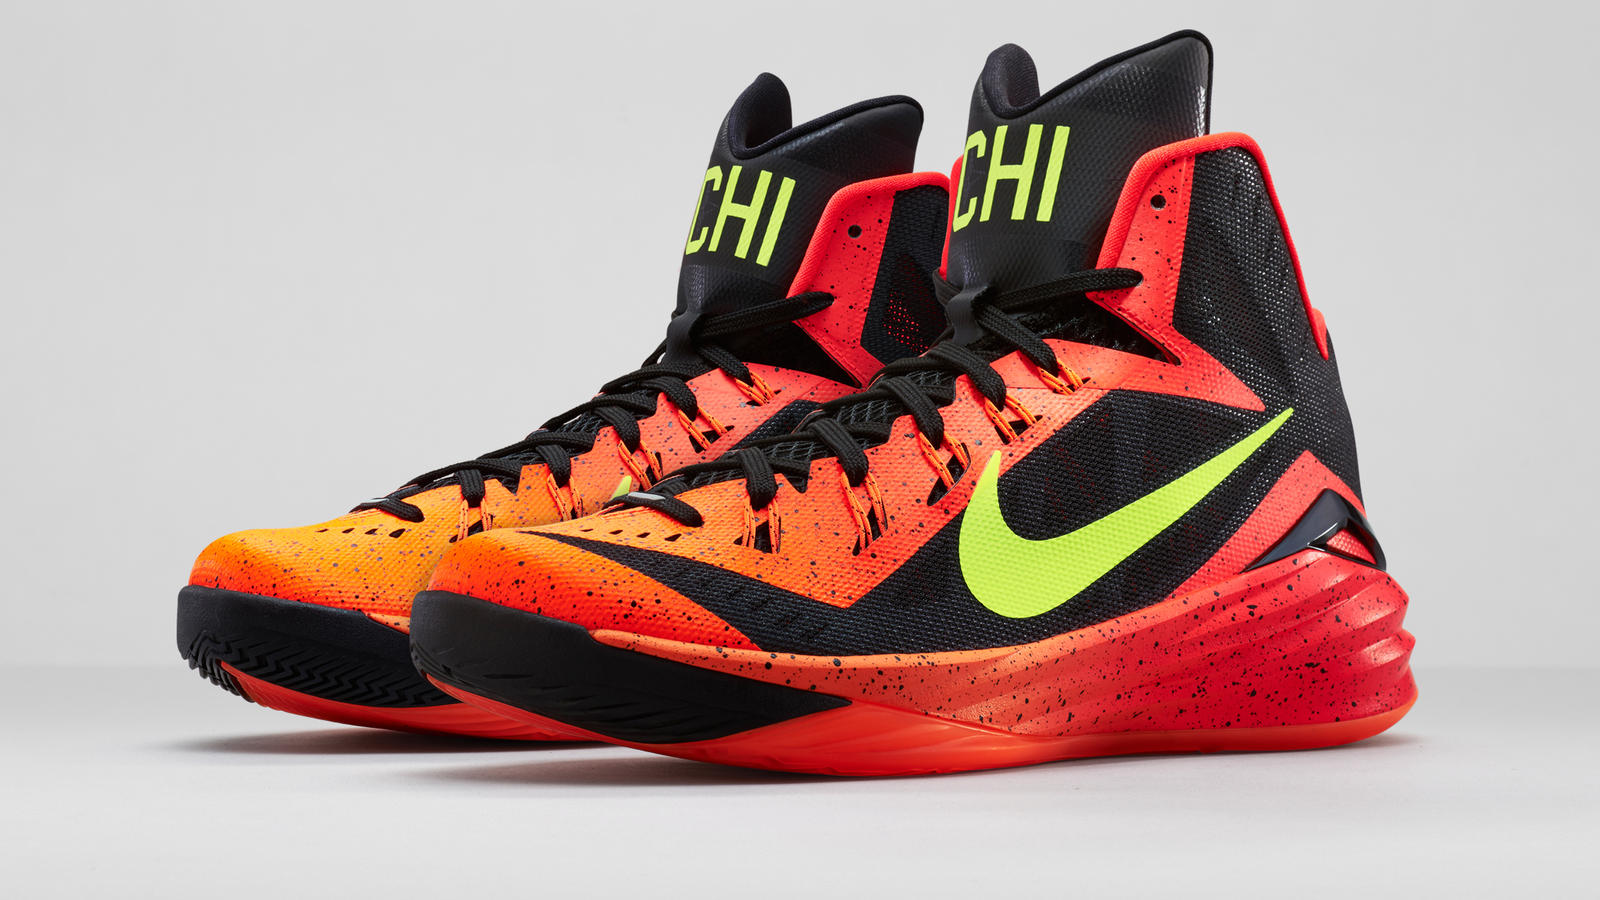 ba7253916846 Nike Hyperdunk 2014 City Pack Takes the Court at World Basketball ...